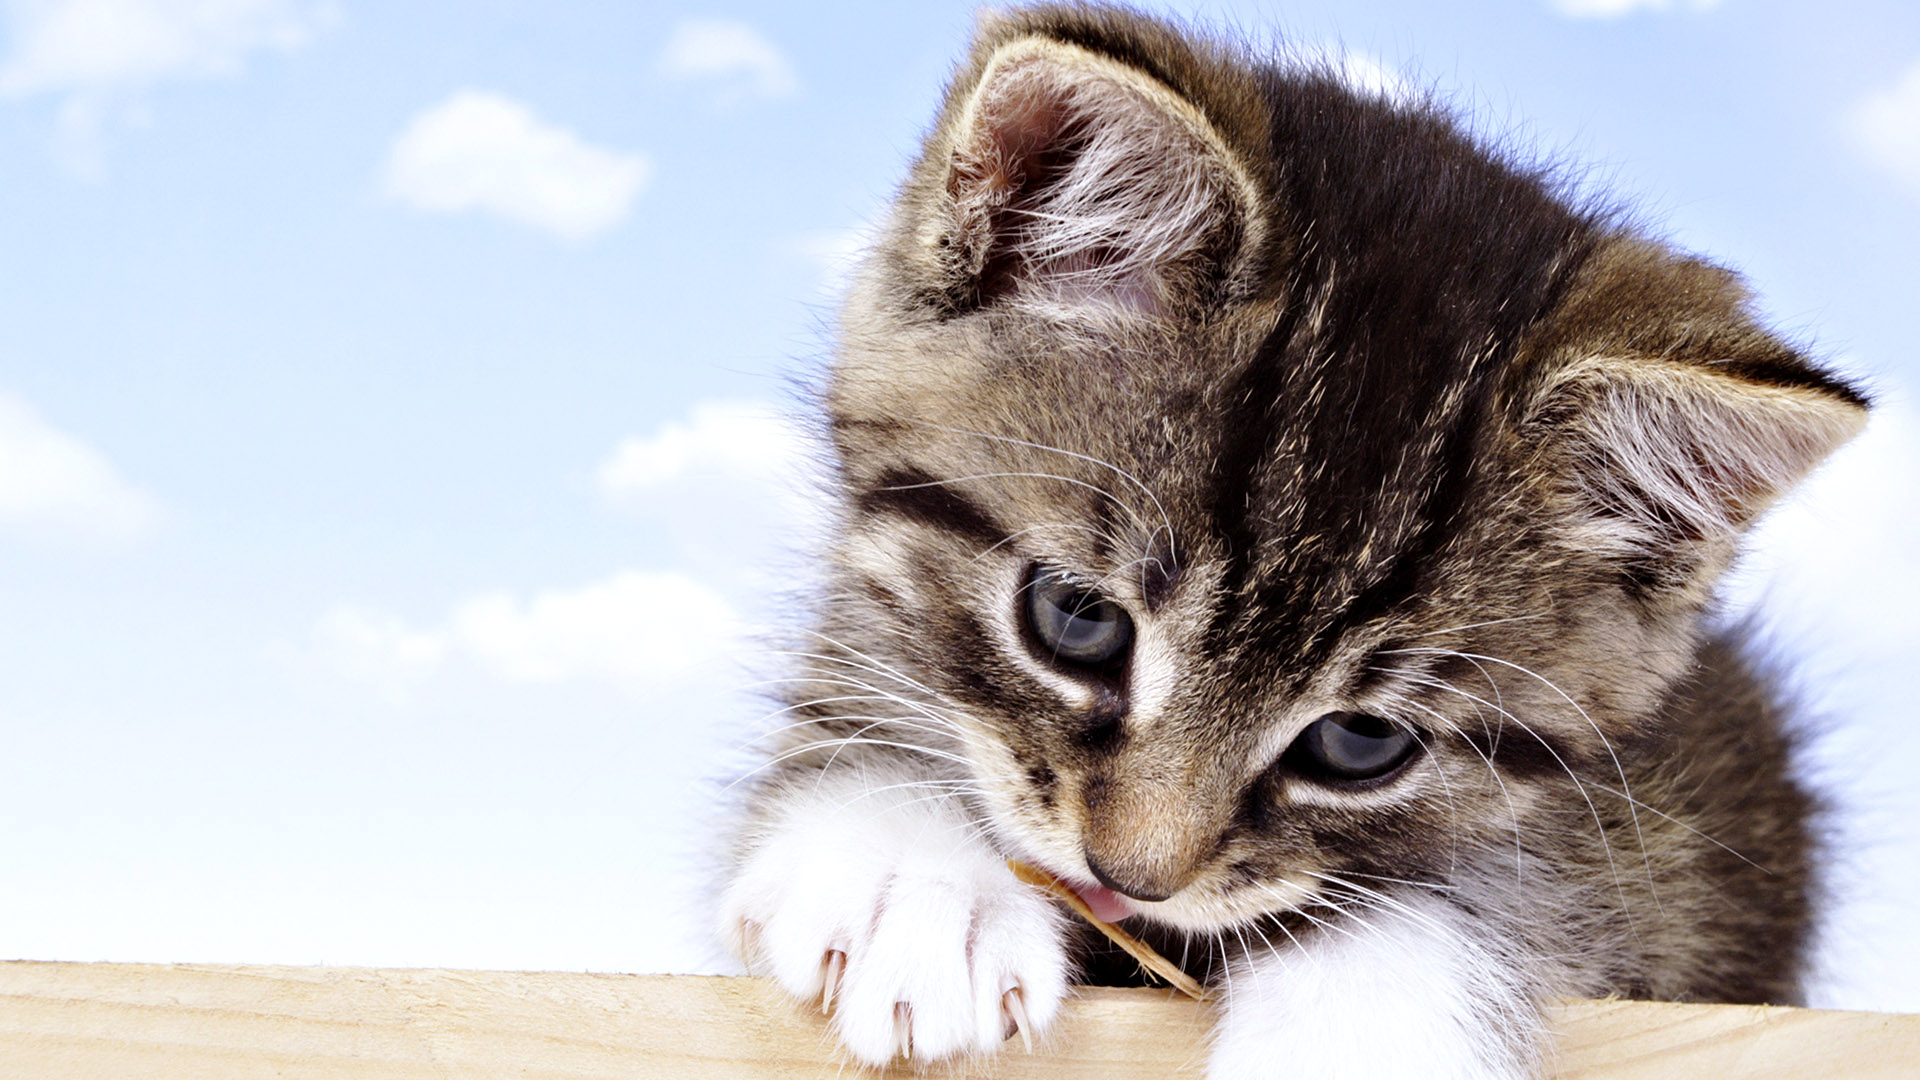 Cute Cat Wallpapers For Desktop 30 images on Genchi.info